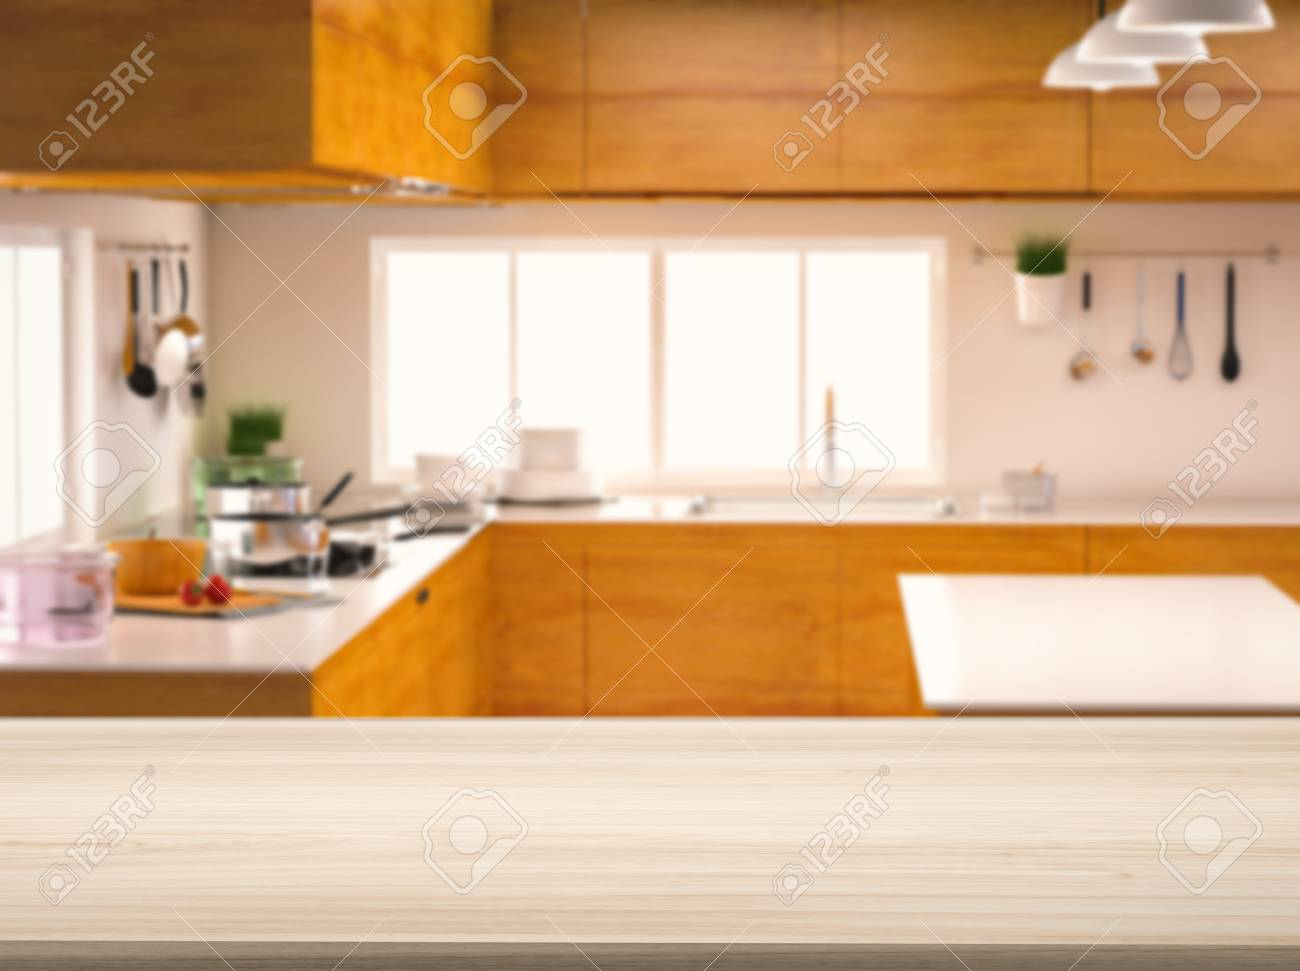 Empty Wooden Counter Top With Kitchen Background